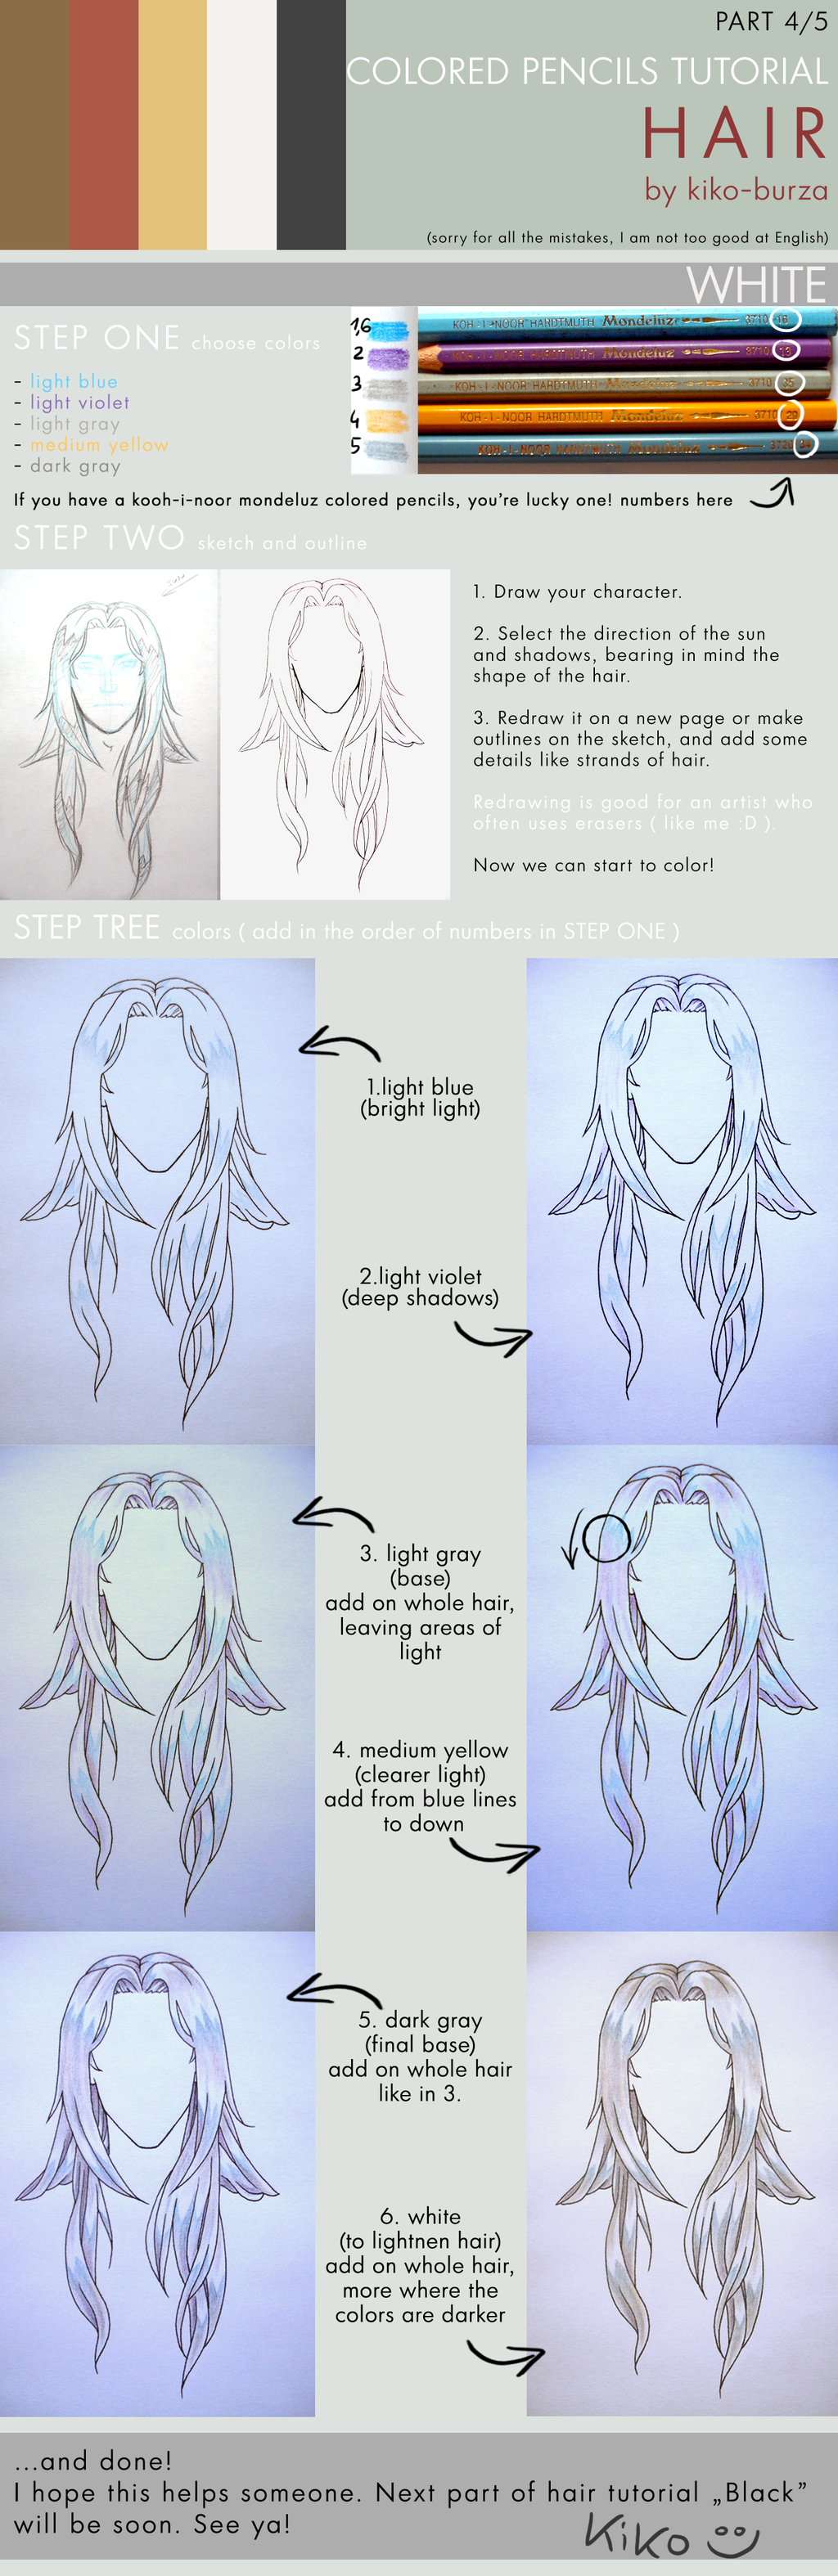 Colored Pencils Tutorial Hair Part 4